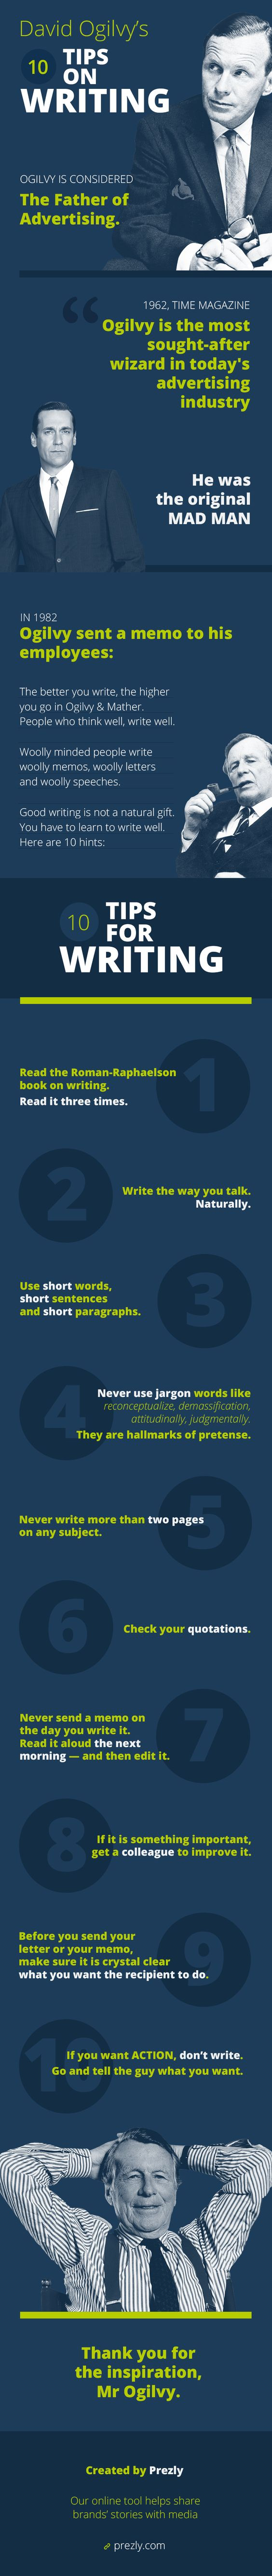 David Ogilvy Copywriting Tips